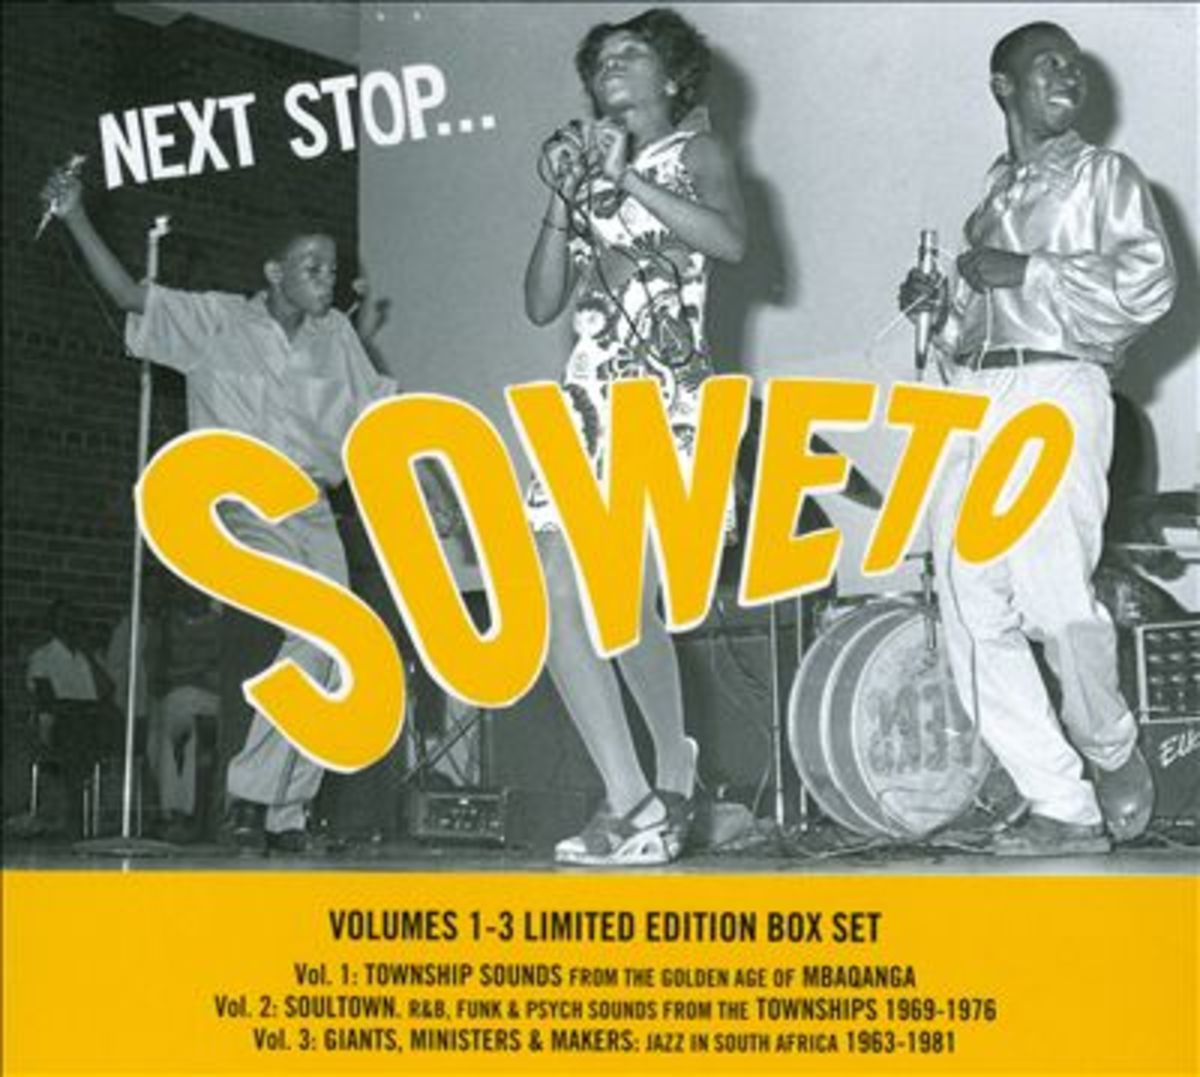 Various Music and Artists From Soweto Past Music Known as Mbaqanga